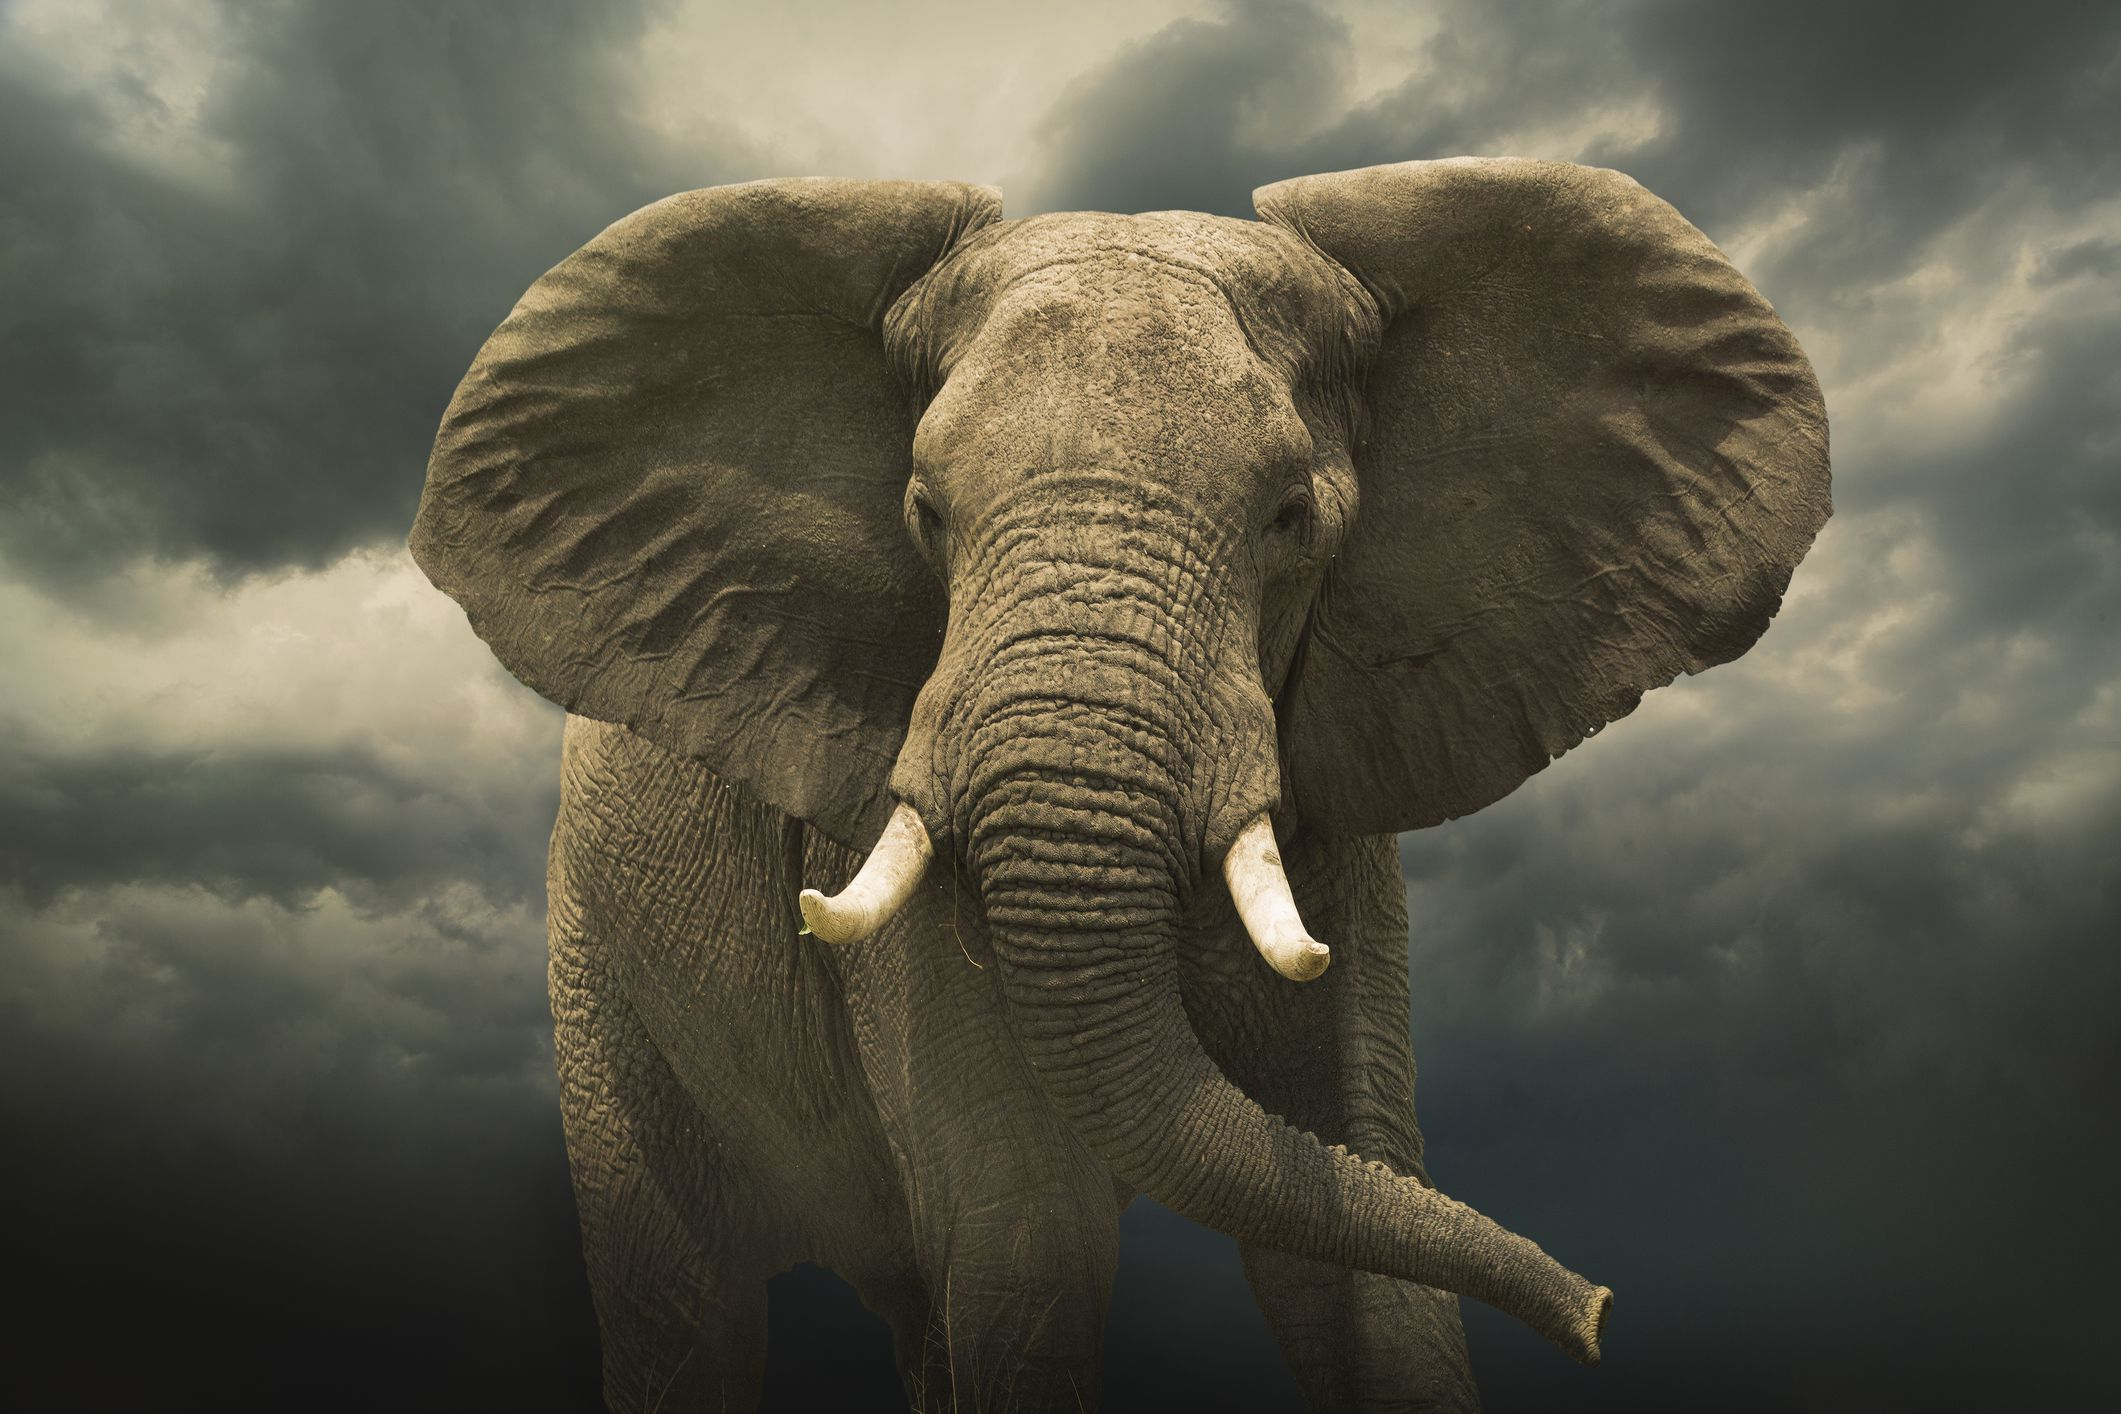 10 facts about elephants